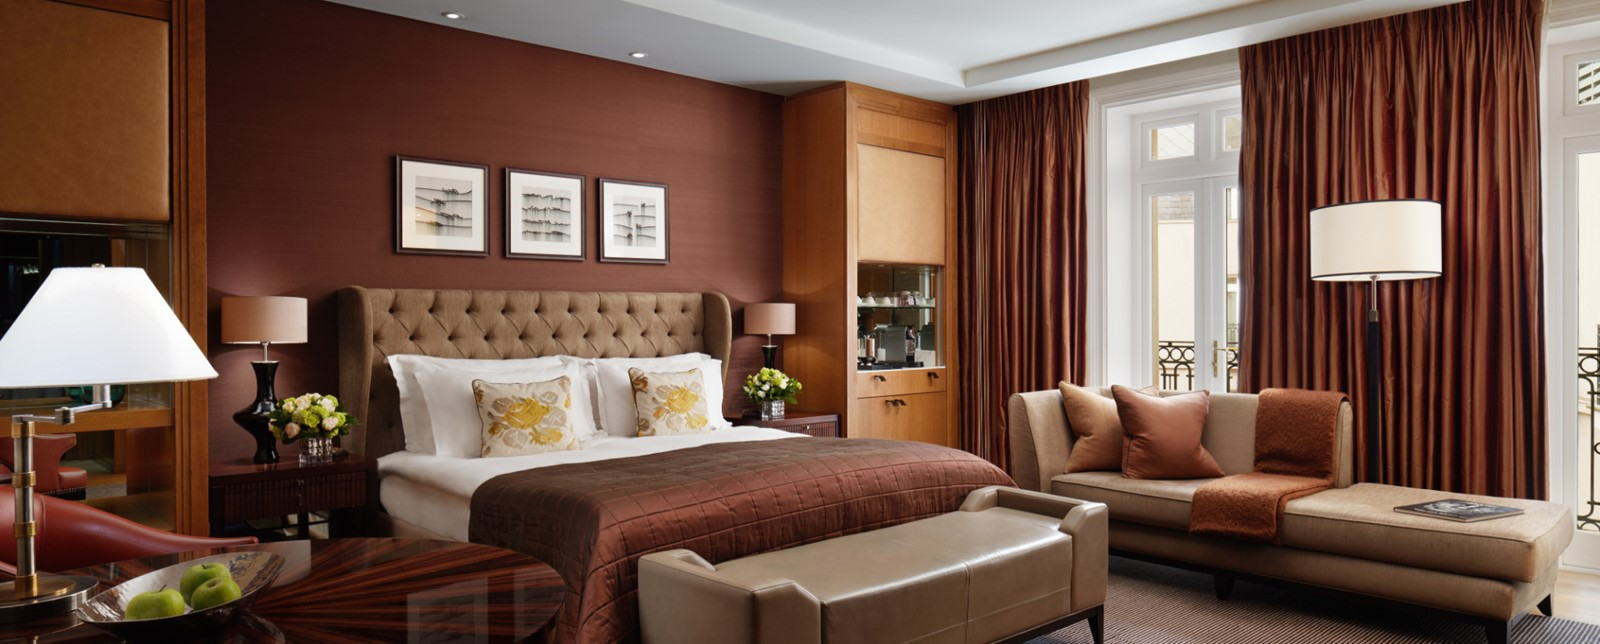 corinthia london deluxe junior suite